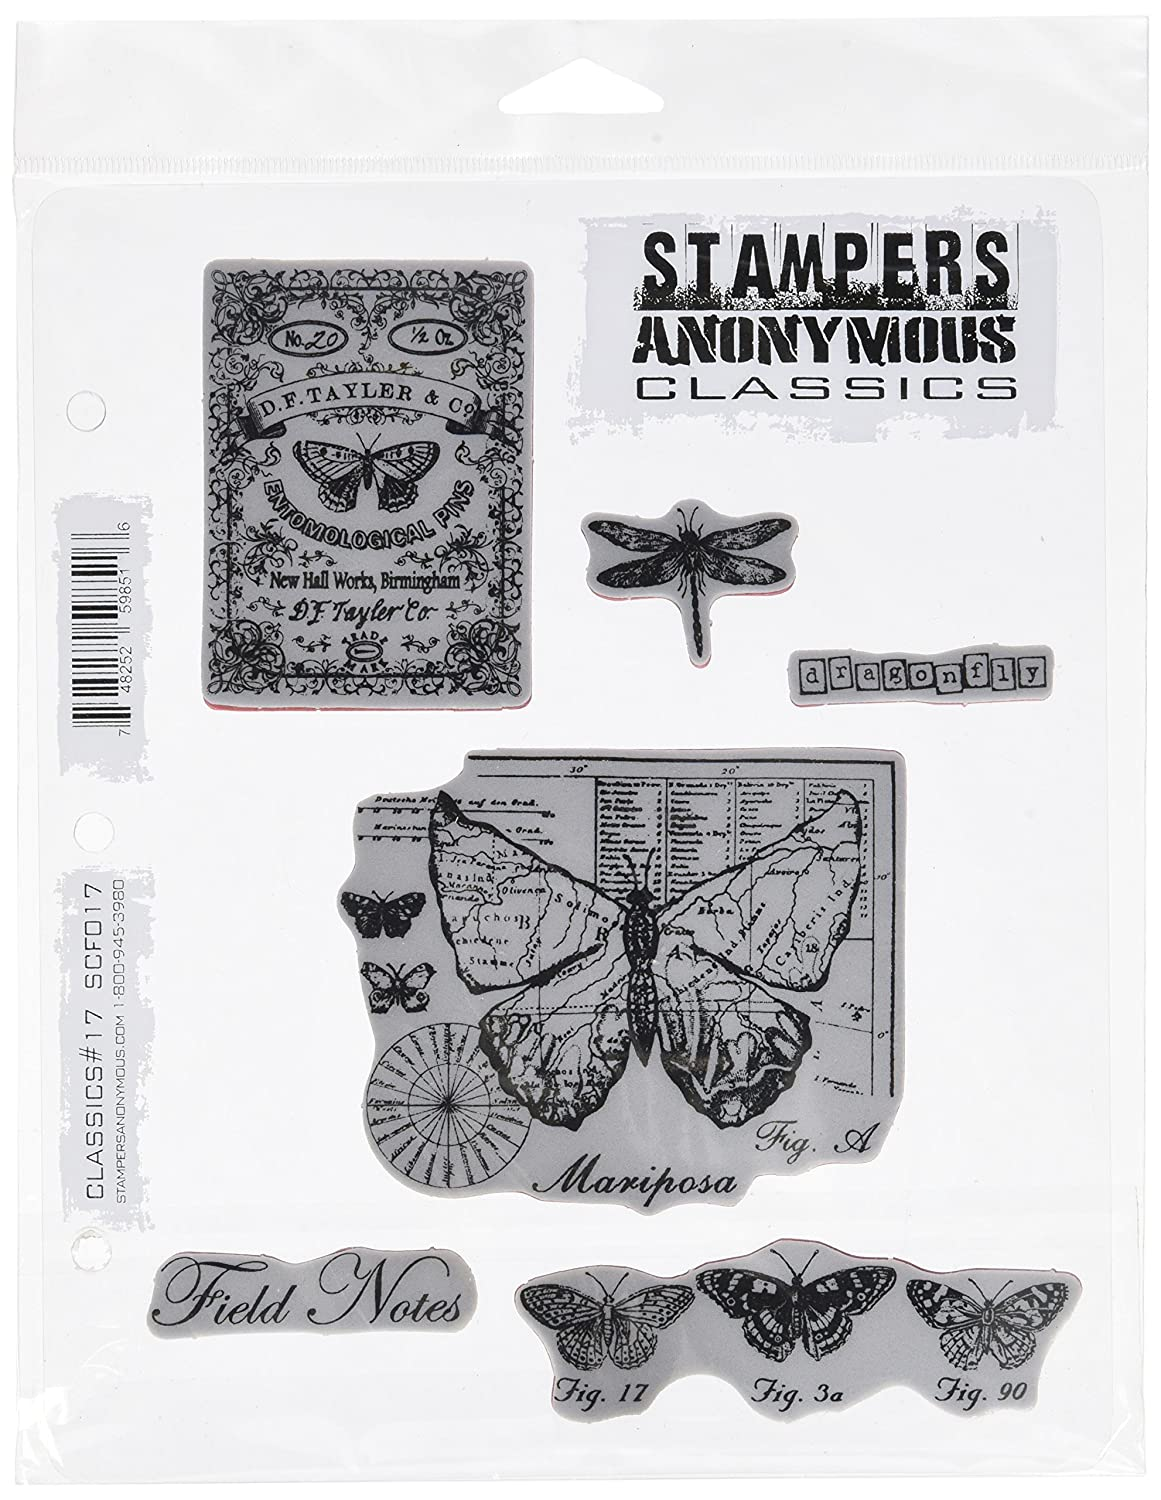 Stampers Anonymous Rubber Stamp Stamp Stamp Set 7 X8.5 -Classics  12 B00I3ODMD2 | Elegant und feierlich